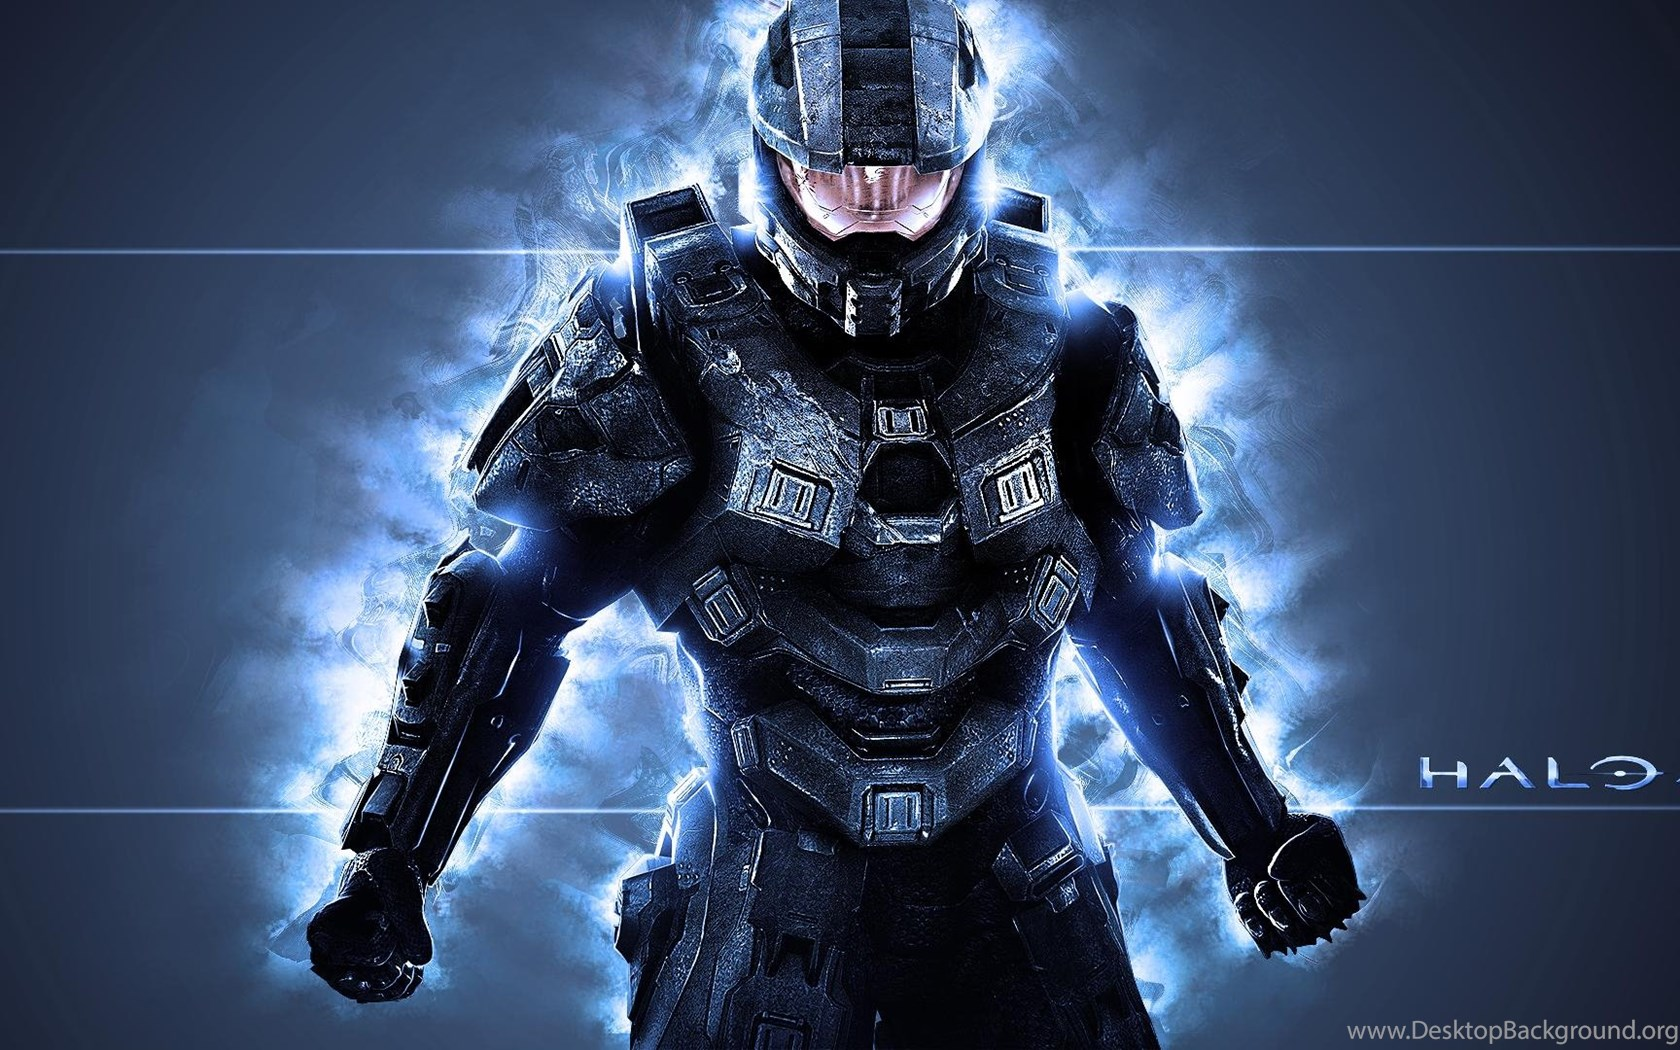 Halo 4 Master Chief Wallpapers Desktop Background